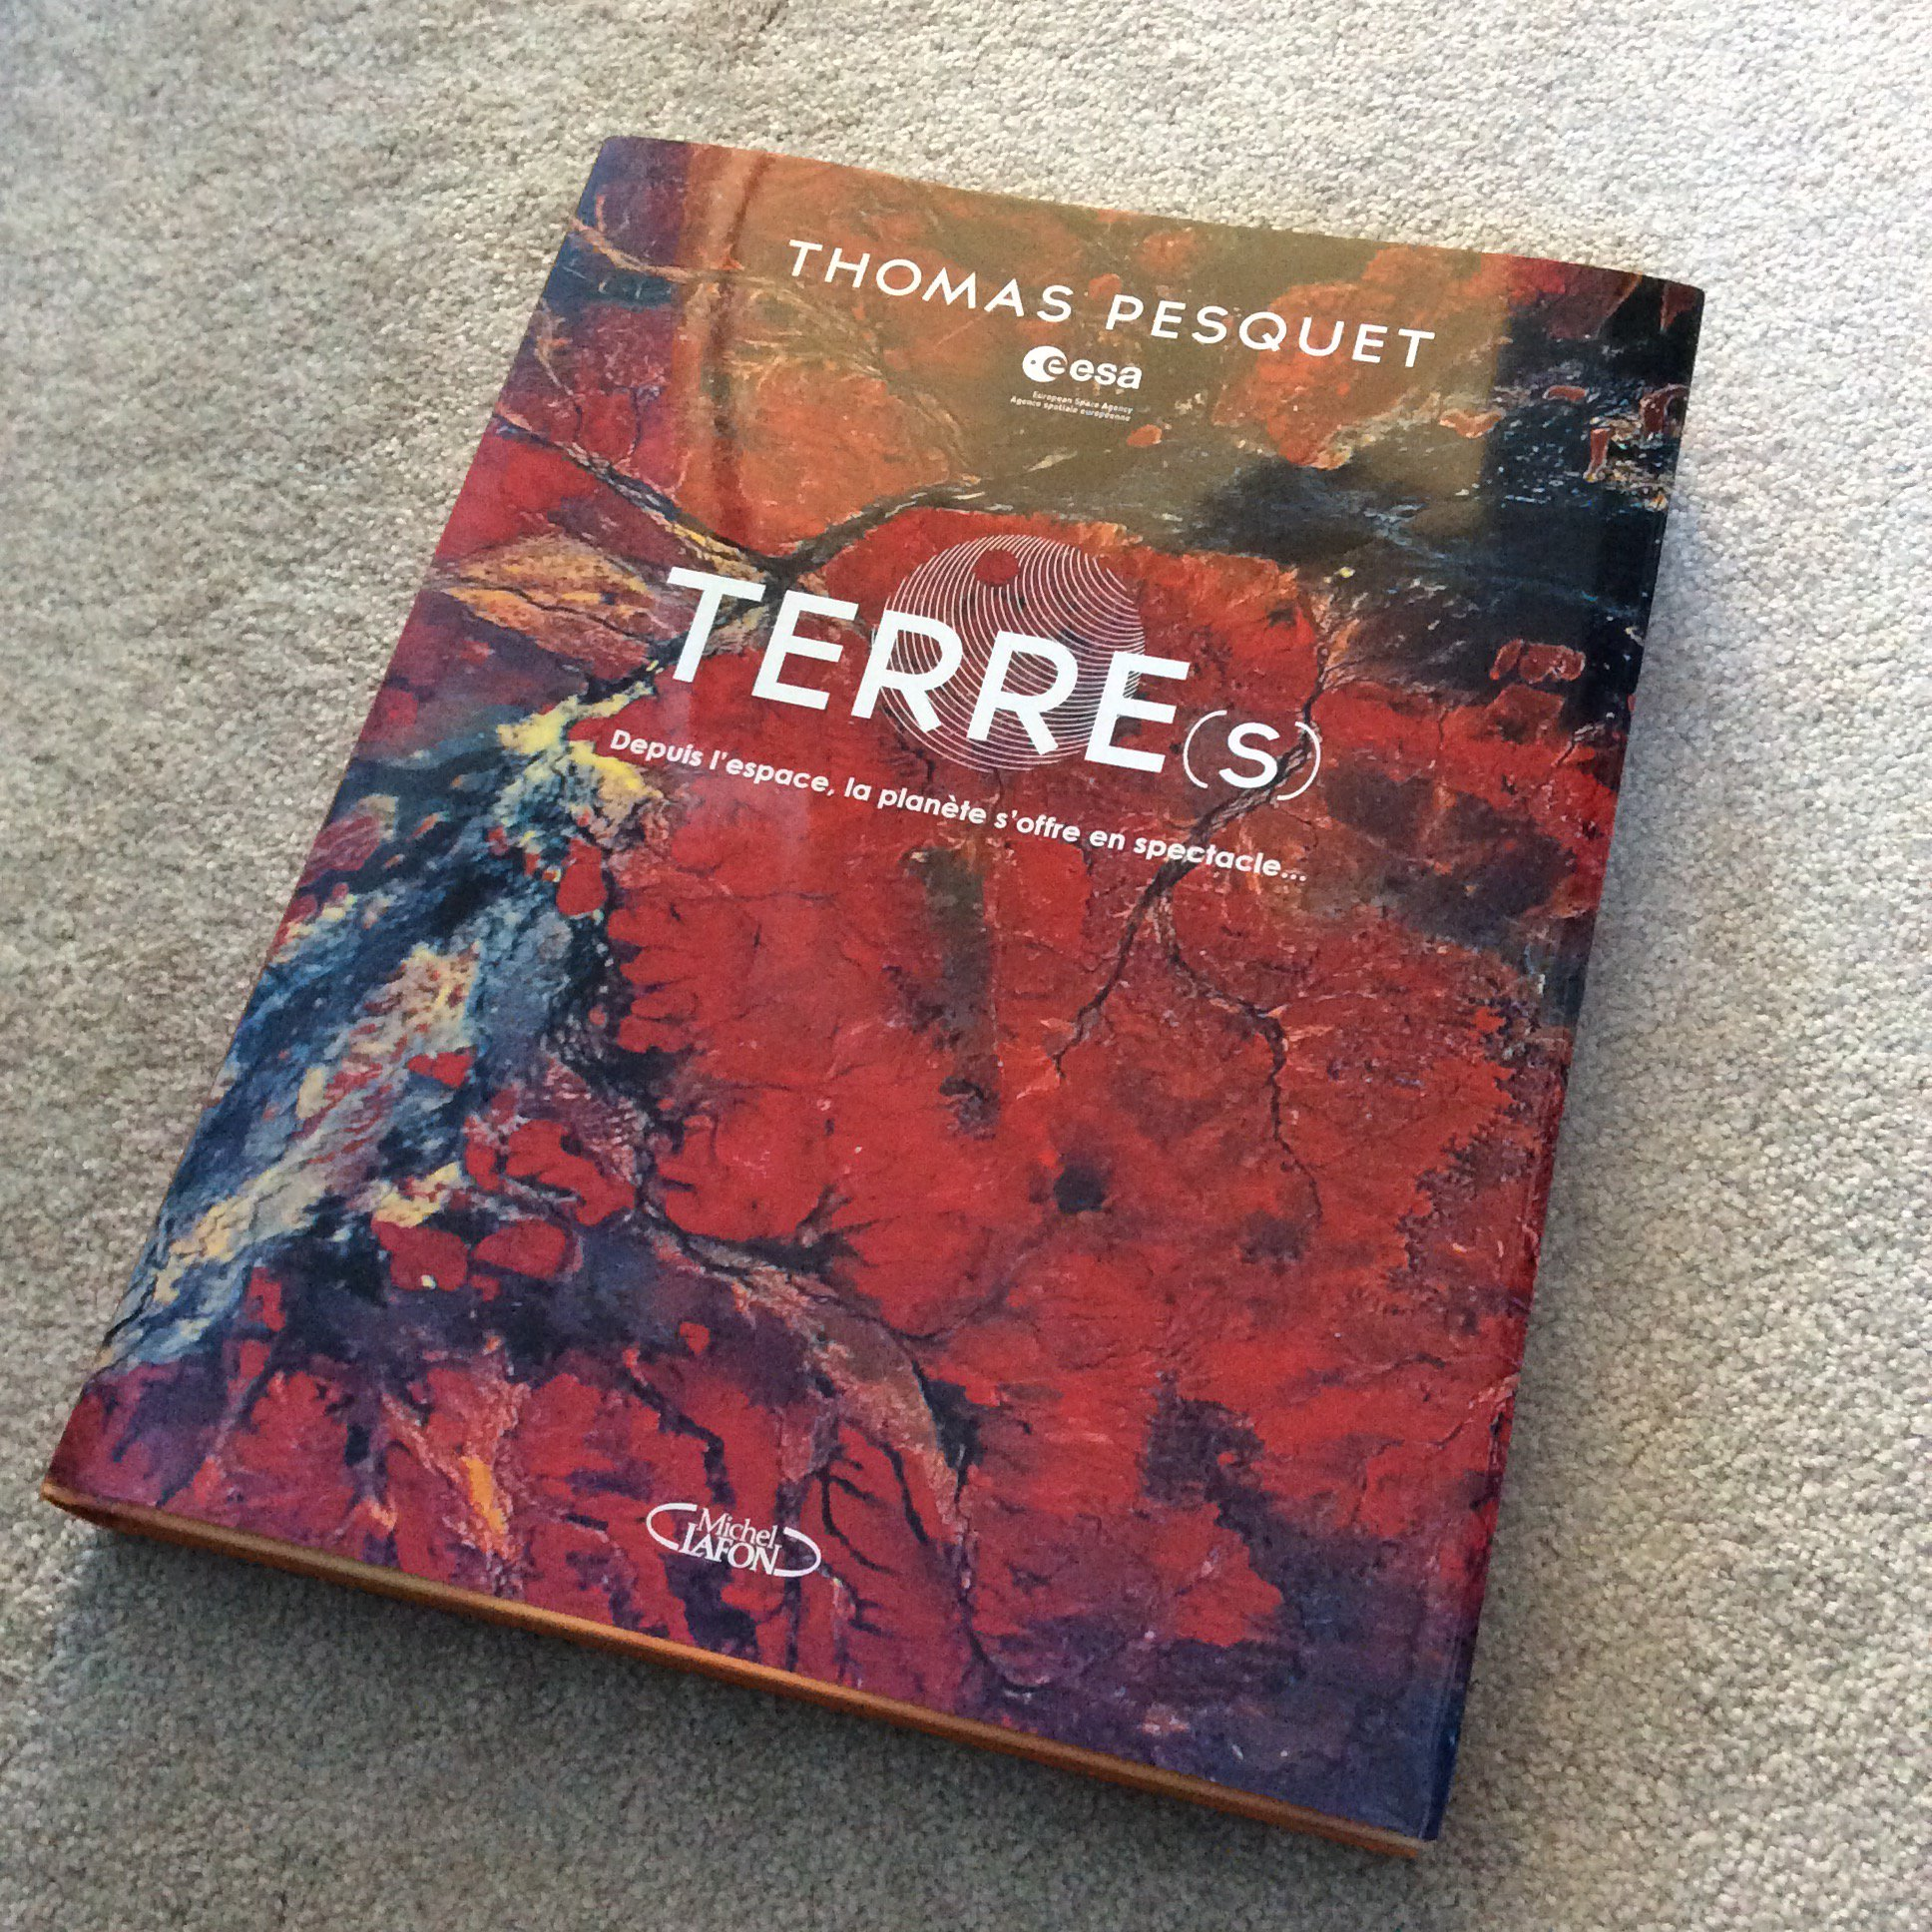 TERRE(s) by @Thom_astro is the most phenomenal book of mind blowing, beautiful and stunning photographs of our planet, as seen from the ISS. I'm in awe. Merci Thomas ! @esa https://t.co/dx8pycOFm0